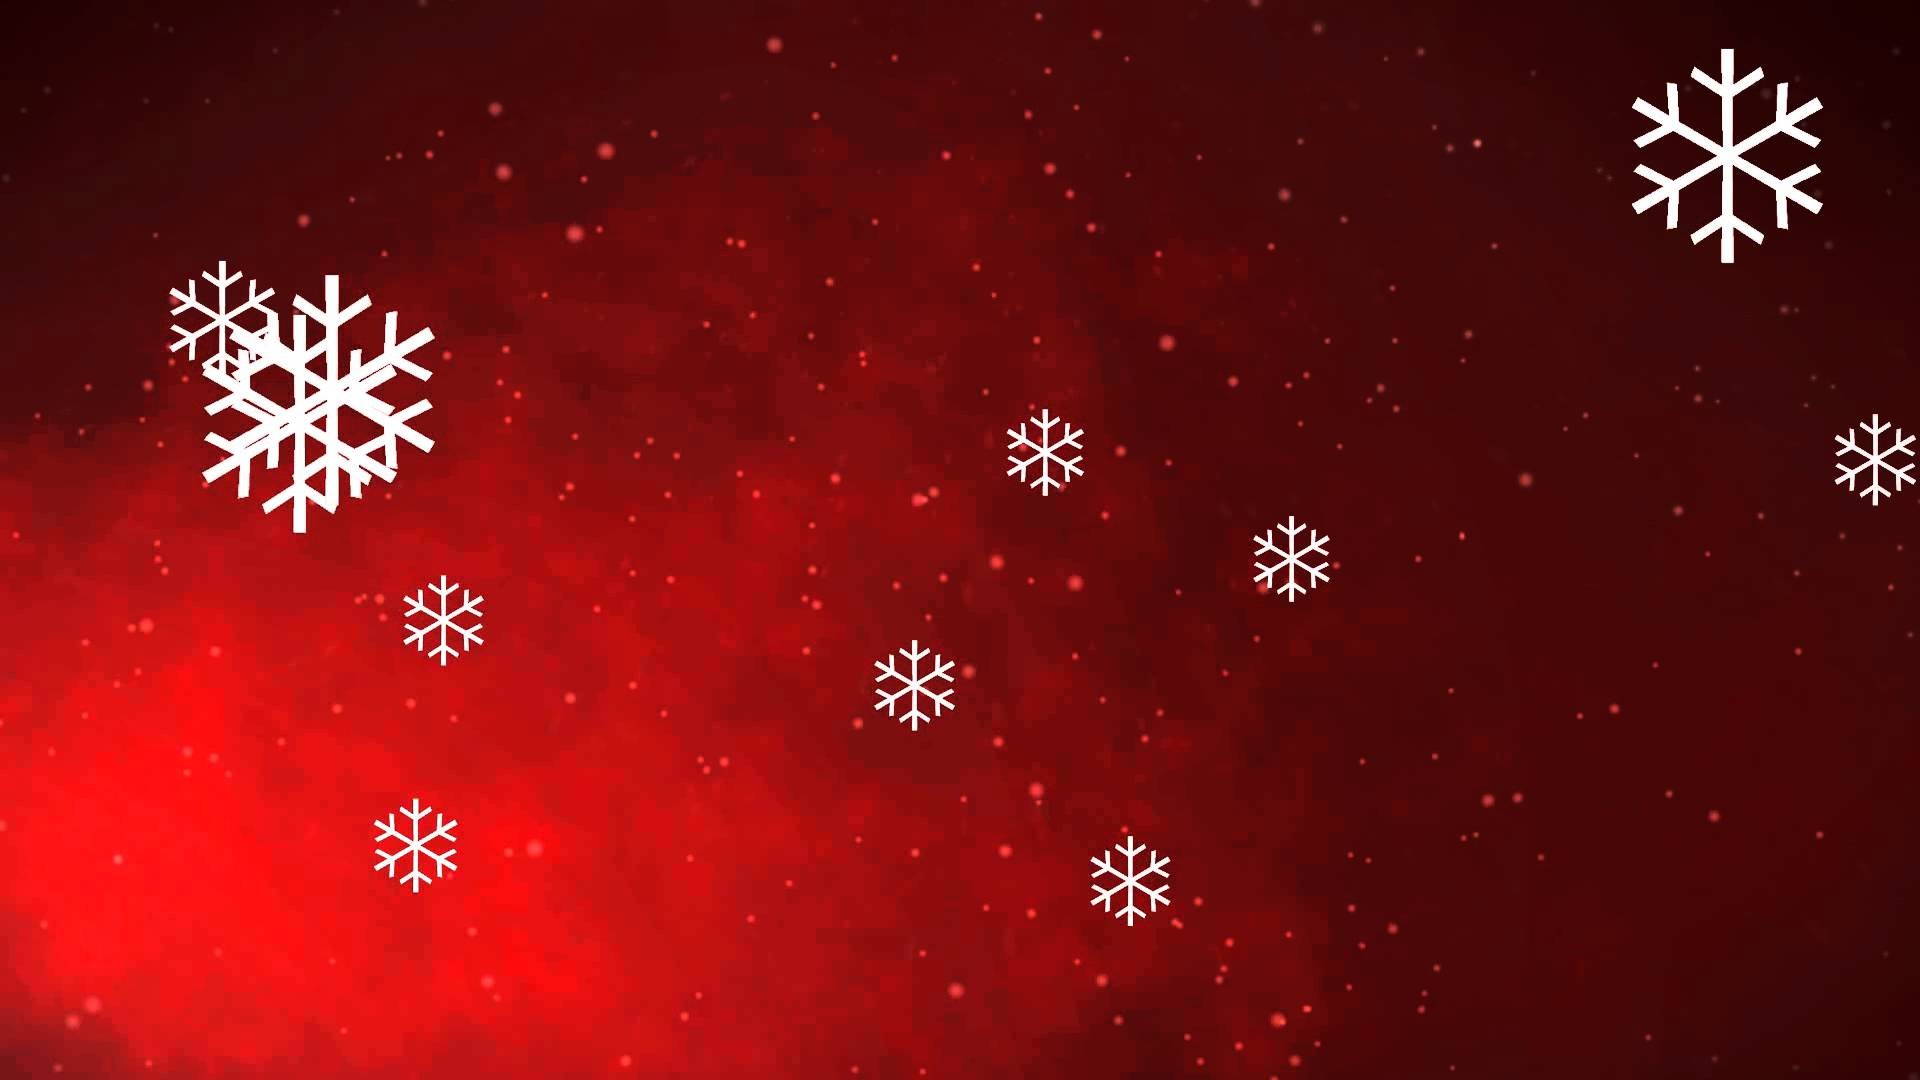 Snow Falling Wallpapers Free Download Snowflakes Background 43 Images